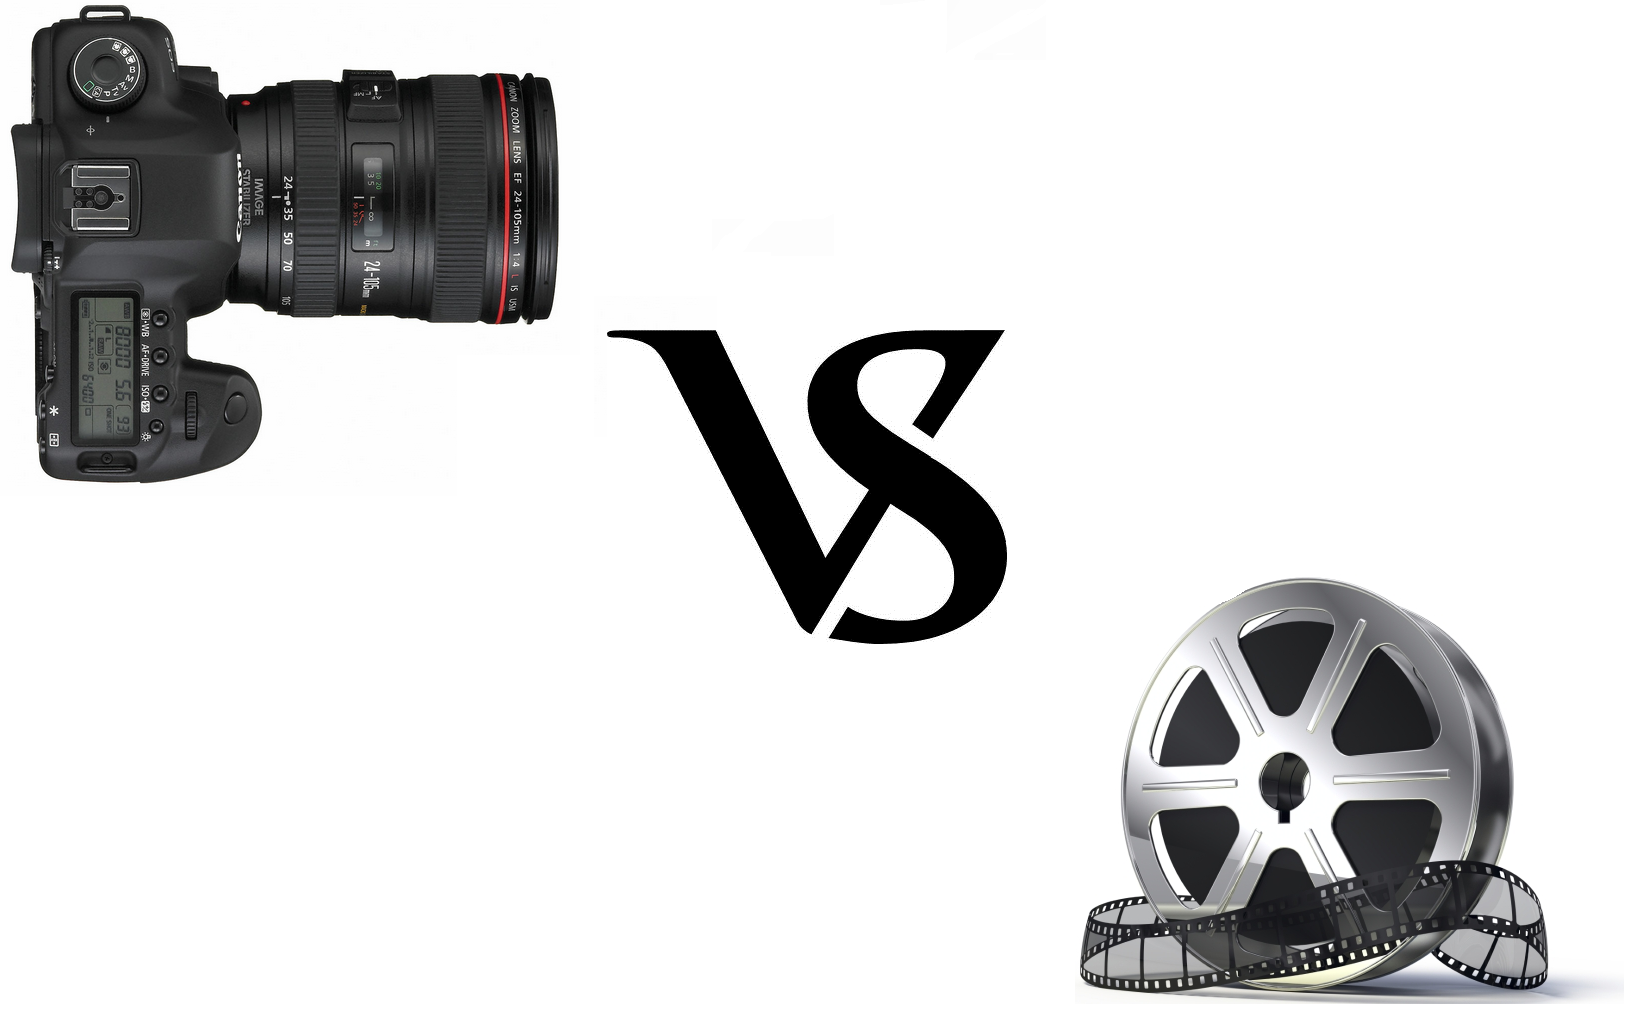 Pellicule VS 5D Mark II